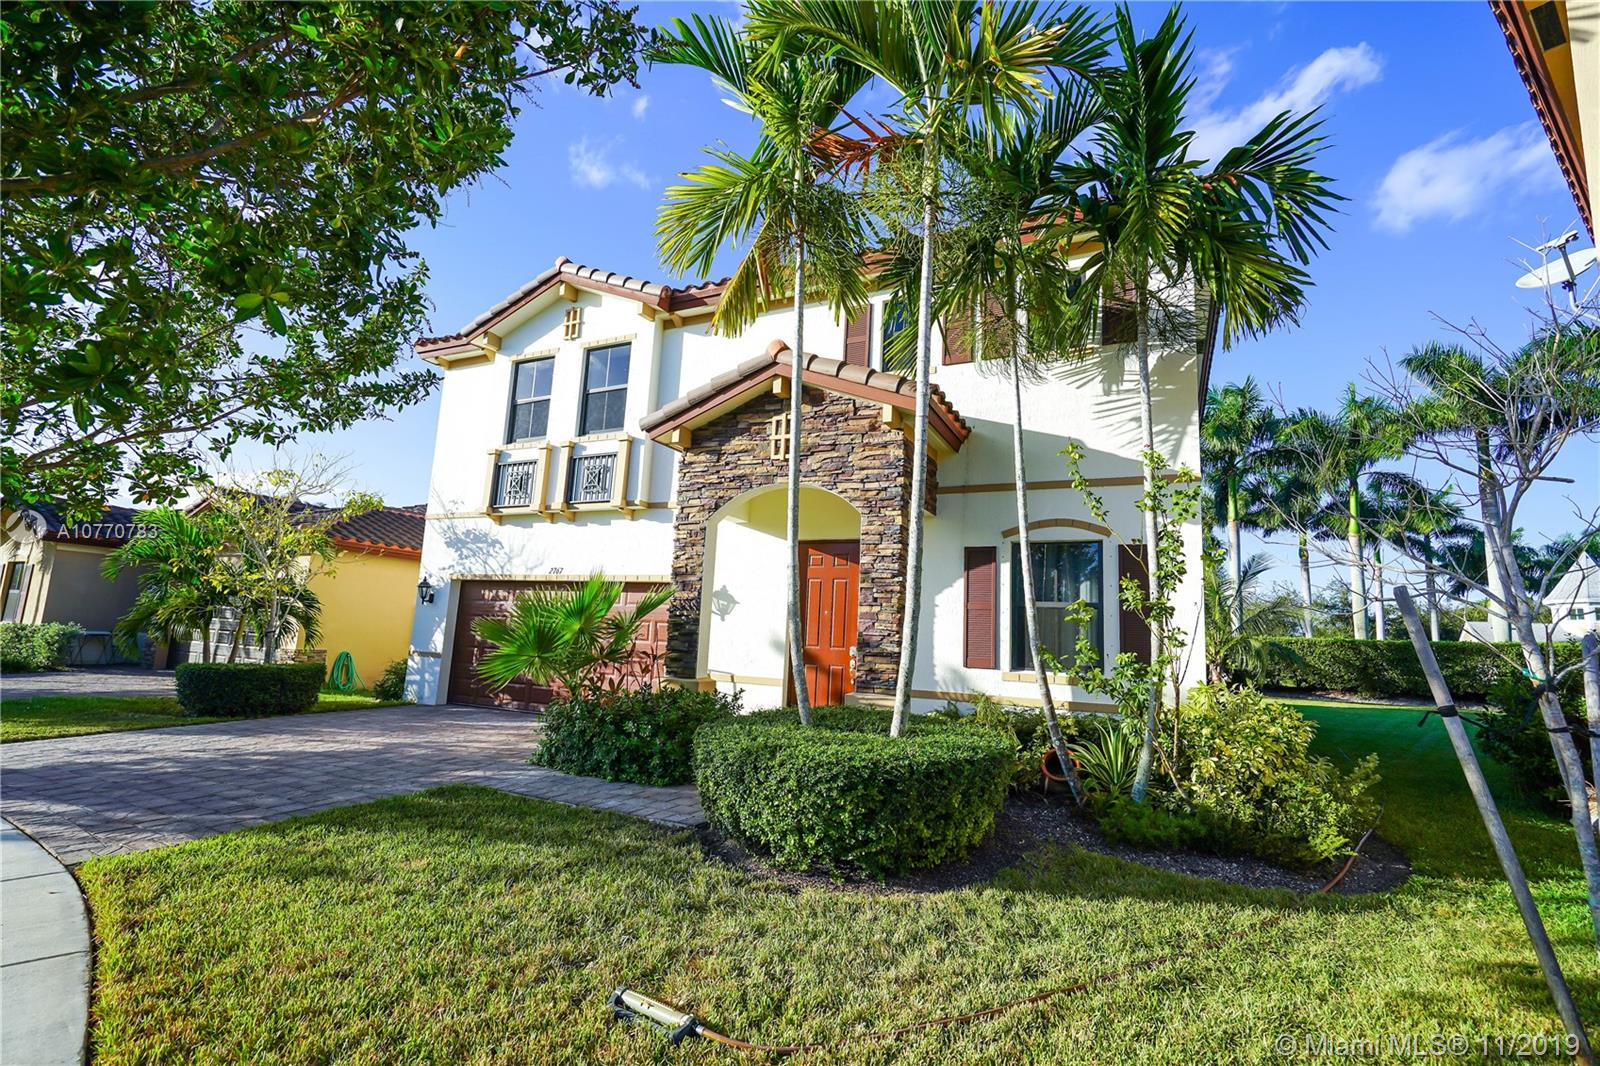 2767 NE 2 Dr, Homestead, FL 33033 - Homestead, FL real estate listing